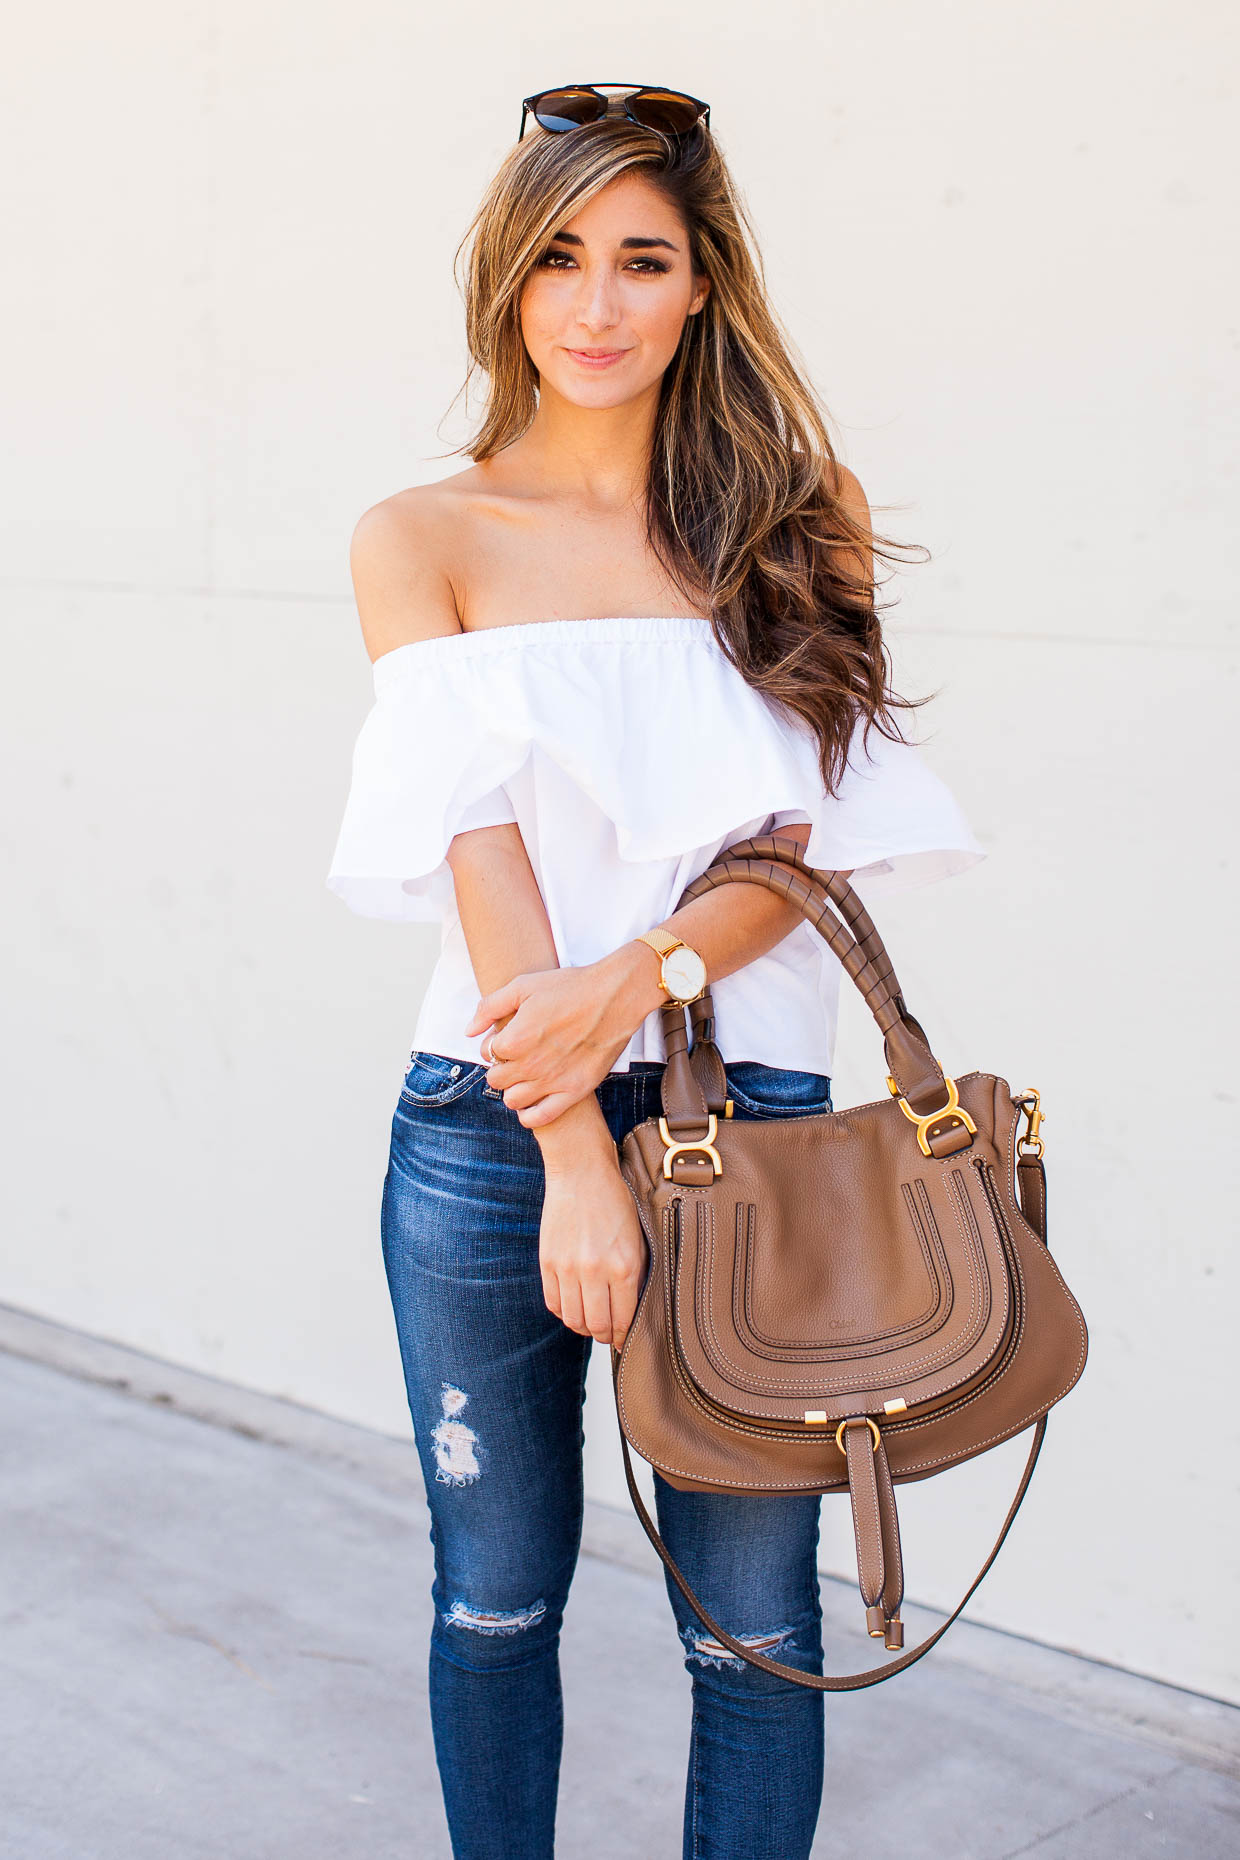 """The Darling Detail wearing a white Topshop Poplin Bardot Top with AG """"The Legging"""" Ankle Jeans and Steve Madden """"Kierra"""" Platform Sandals—and holding the Chloe Marcie Leather Satchel."""